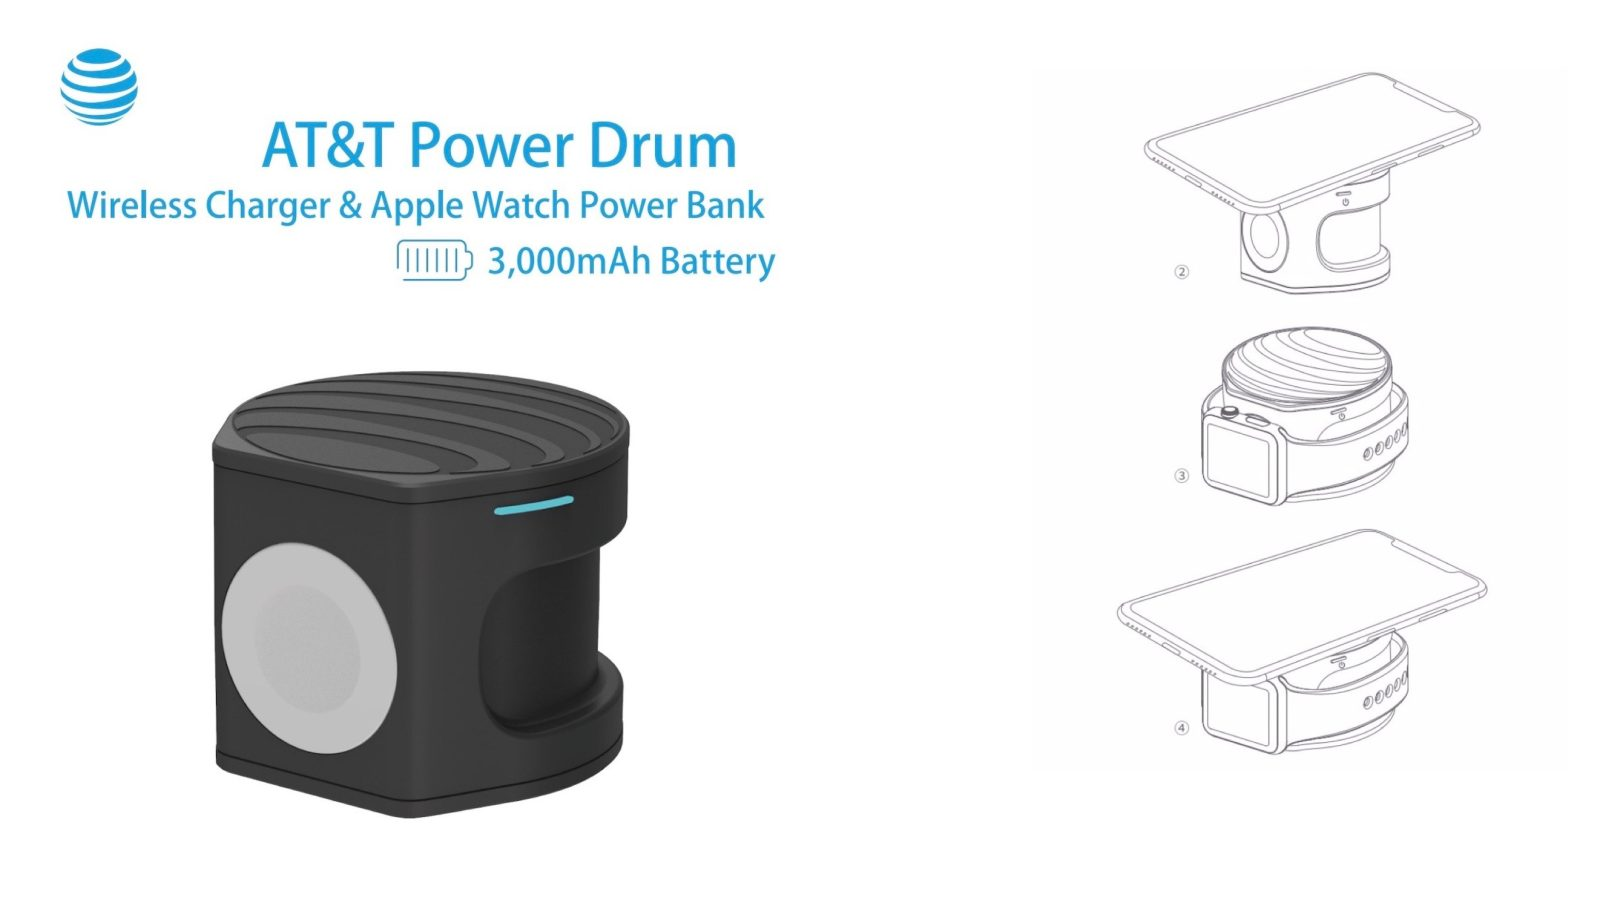 AT&T Planning 2-in-1 'Power Drum' Apple Watch & iPhone Wireless Charger with Integrated Battery